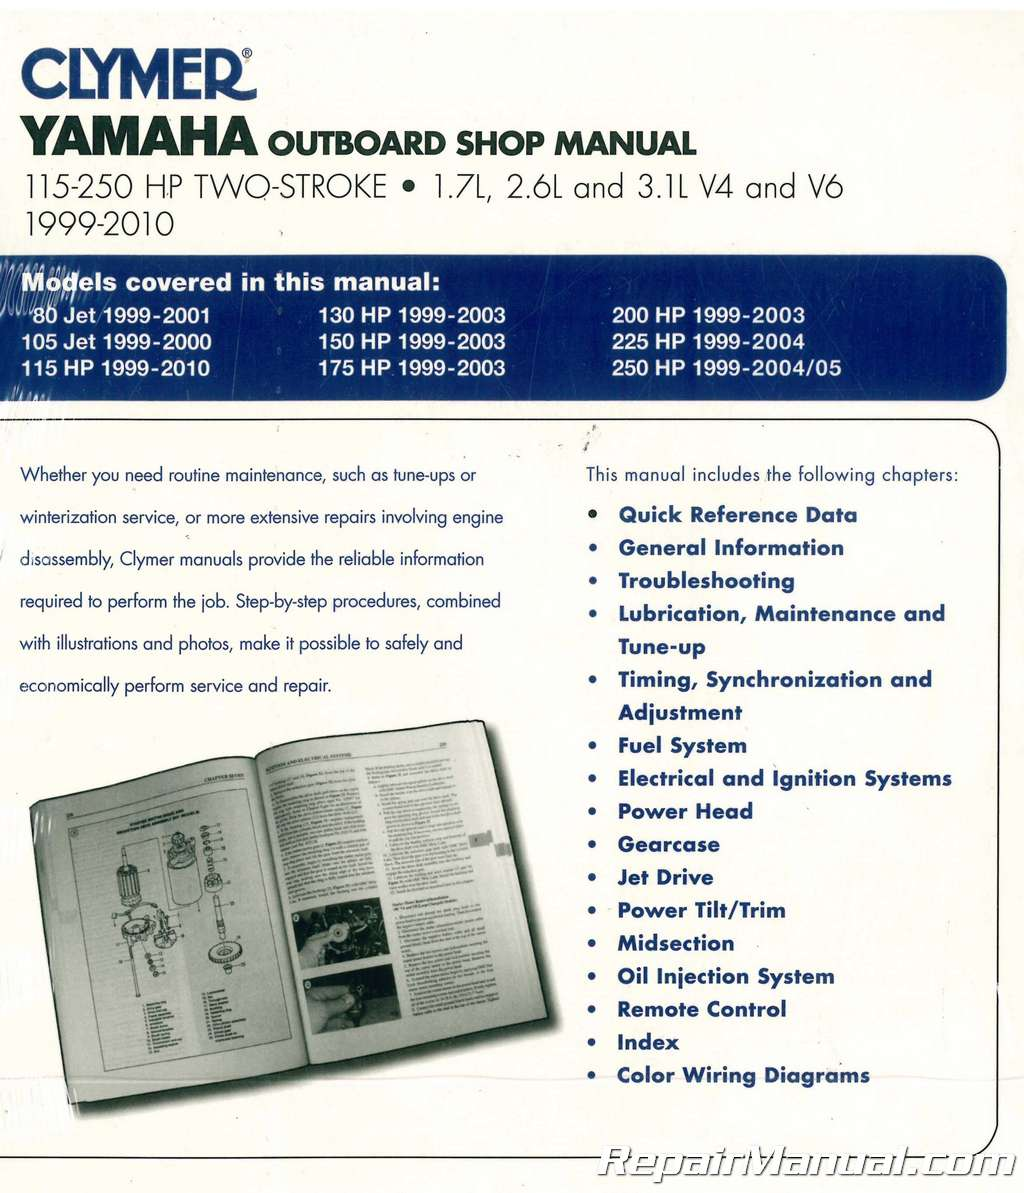 Yamaha mio 115 service manual download manuals & technical.